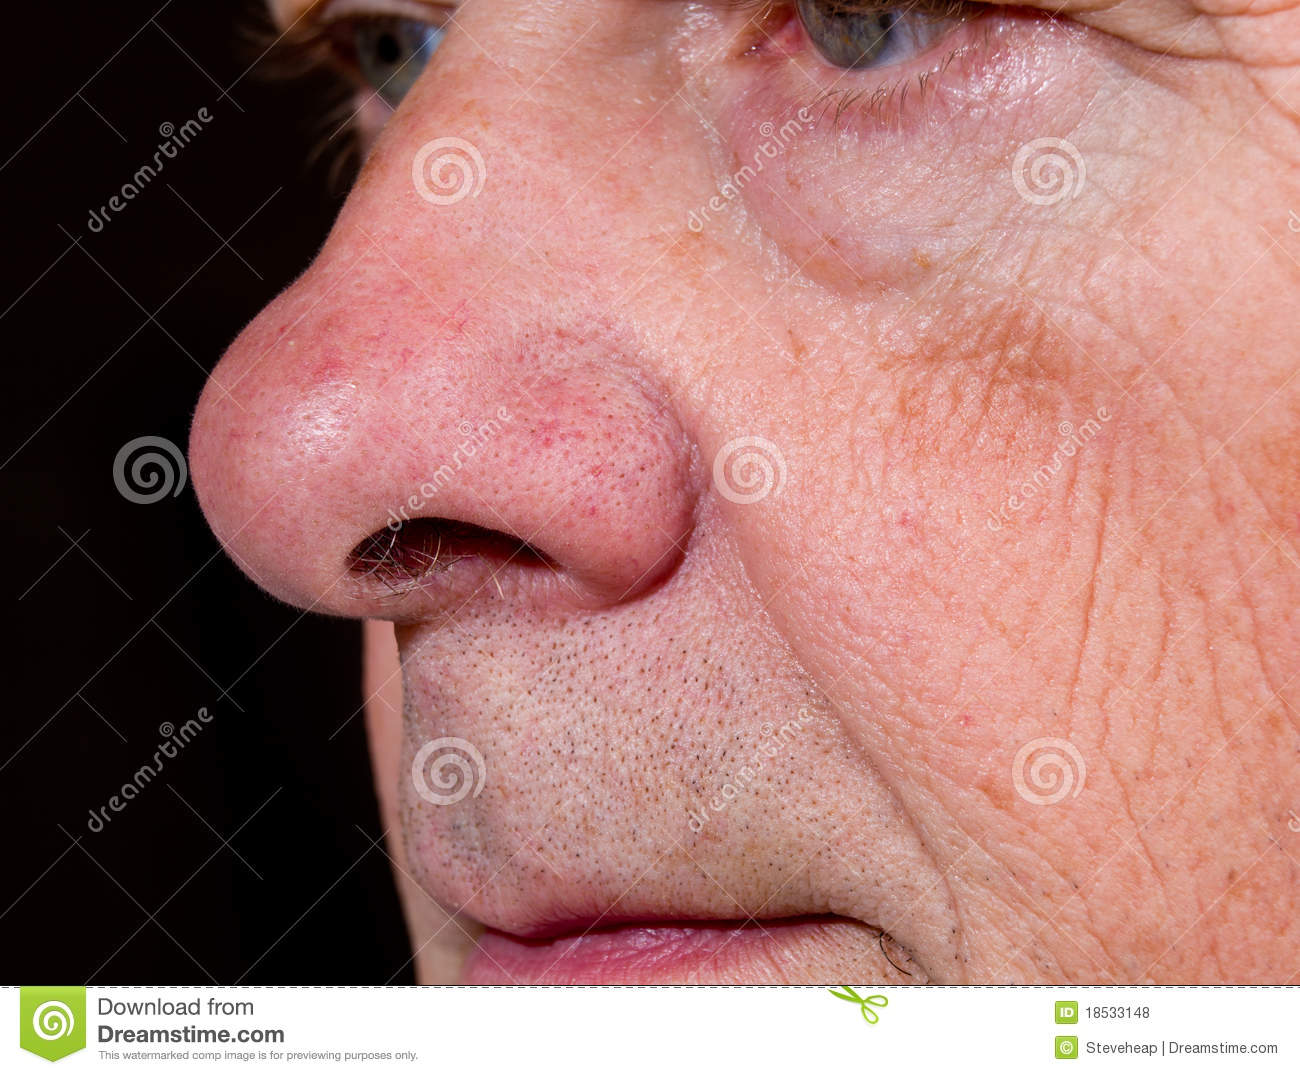 Extreme Close Up Of Senior Nose In Side View Stock Photo - Image of ...